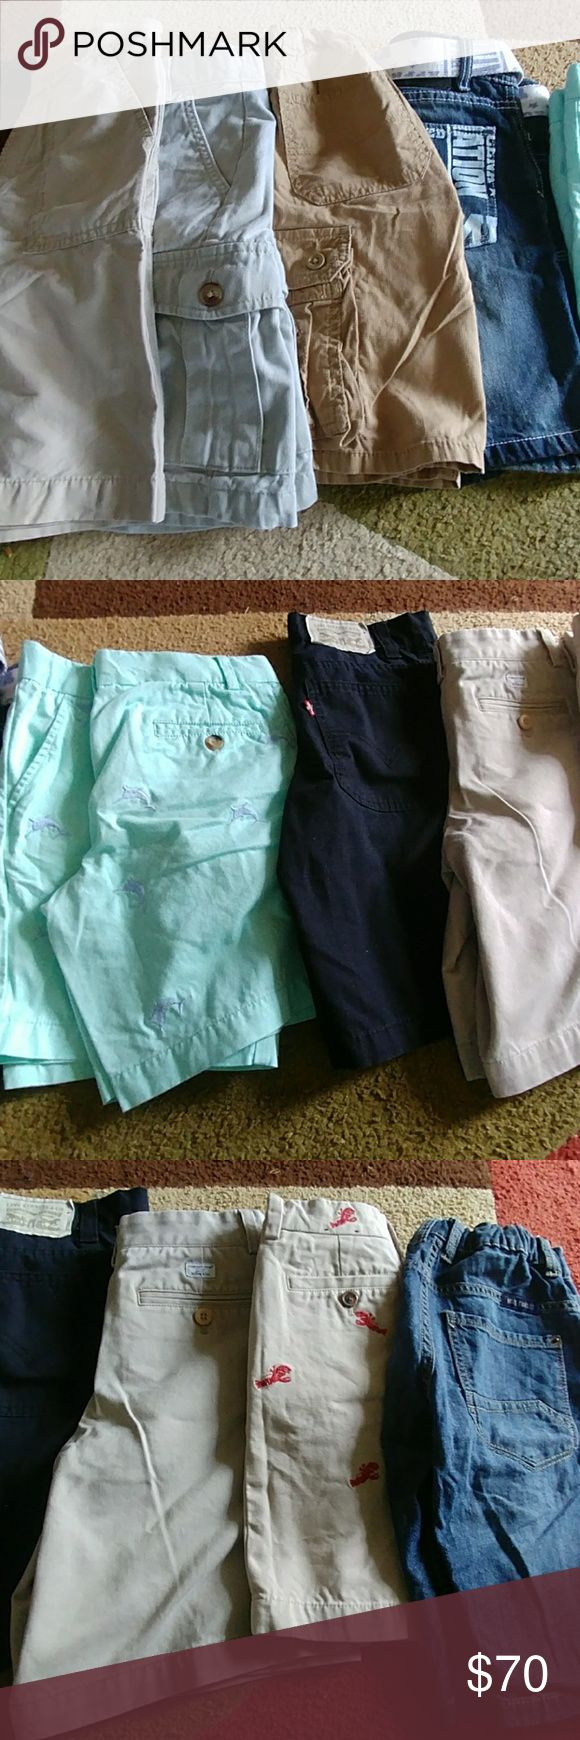 LOT OF 10 BOY'S SHORTS SIZE 7/8 LOT OF 10 BOY'S SHORTS SIZE 7/8.  ALL GENTLY USED OR EUC.  VINEYARD VINES, BROOKS BROTHERS, LEVI'S, J. KHAKI, JOHN CENA, OLD NAVY, FADED GLORY, WRG JEANS CO. see description Bottoms Shorts